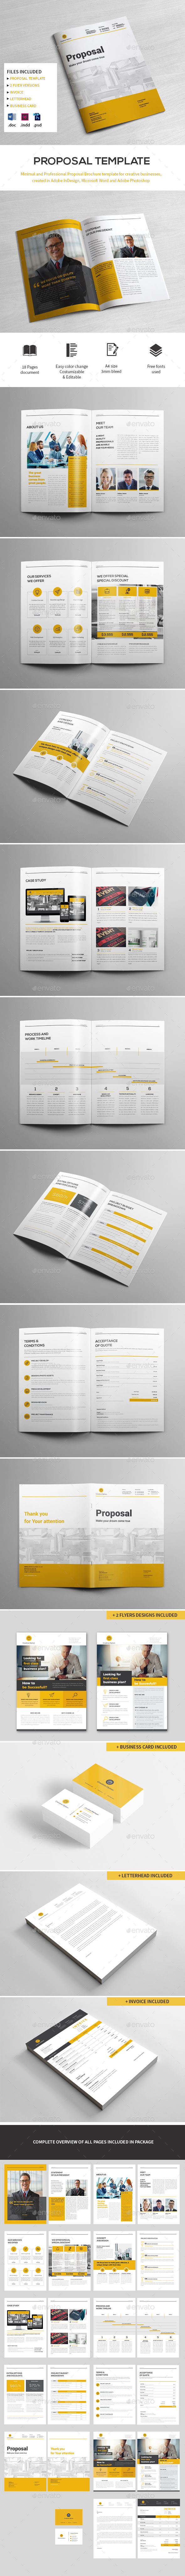 Proposal Template - Proposals & Invoices Stationery